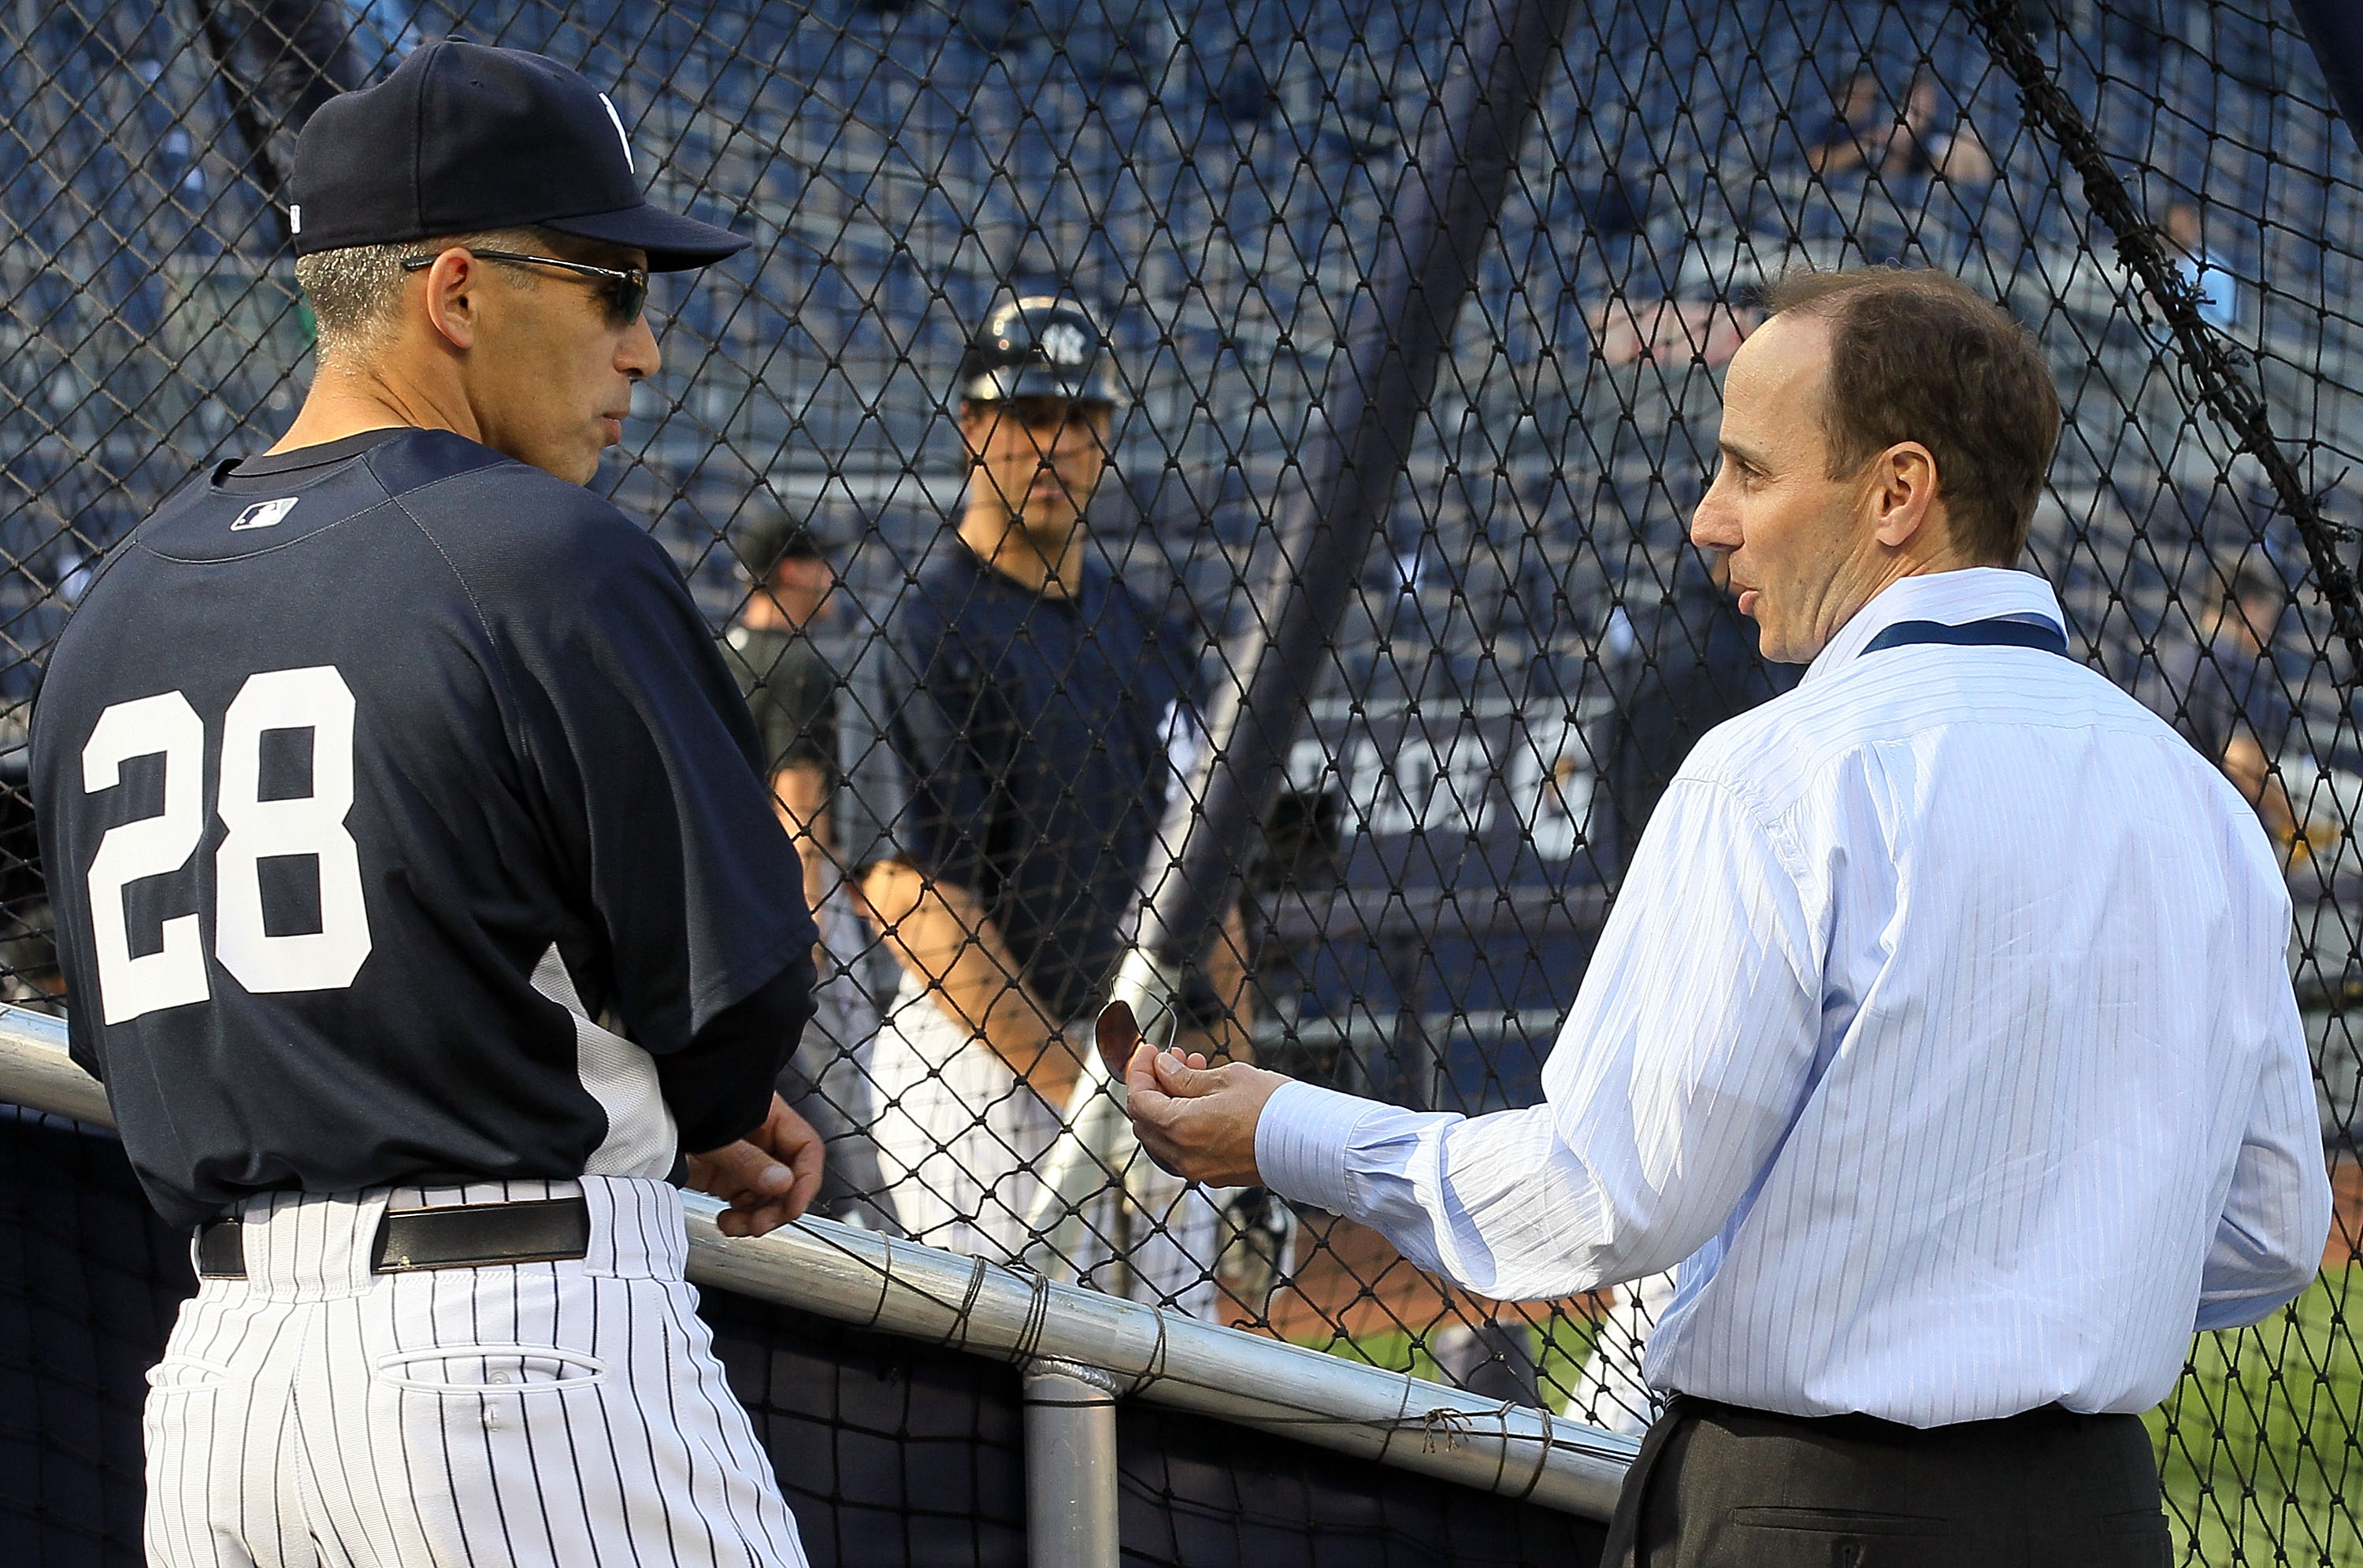 NEW YORK - APRIL 30:  Manager Joe Girardi of the New York Yankees talks with Yankee general manager Brian Cashman during batting practice prior to the game against the Chicago White Sox on April 30, 2010 at Yankee Stadium in the Bronx borough of New York